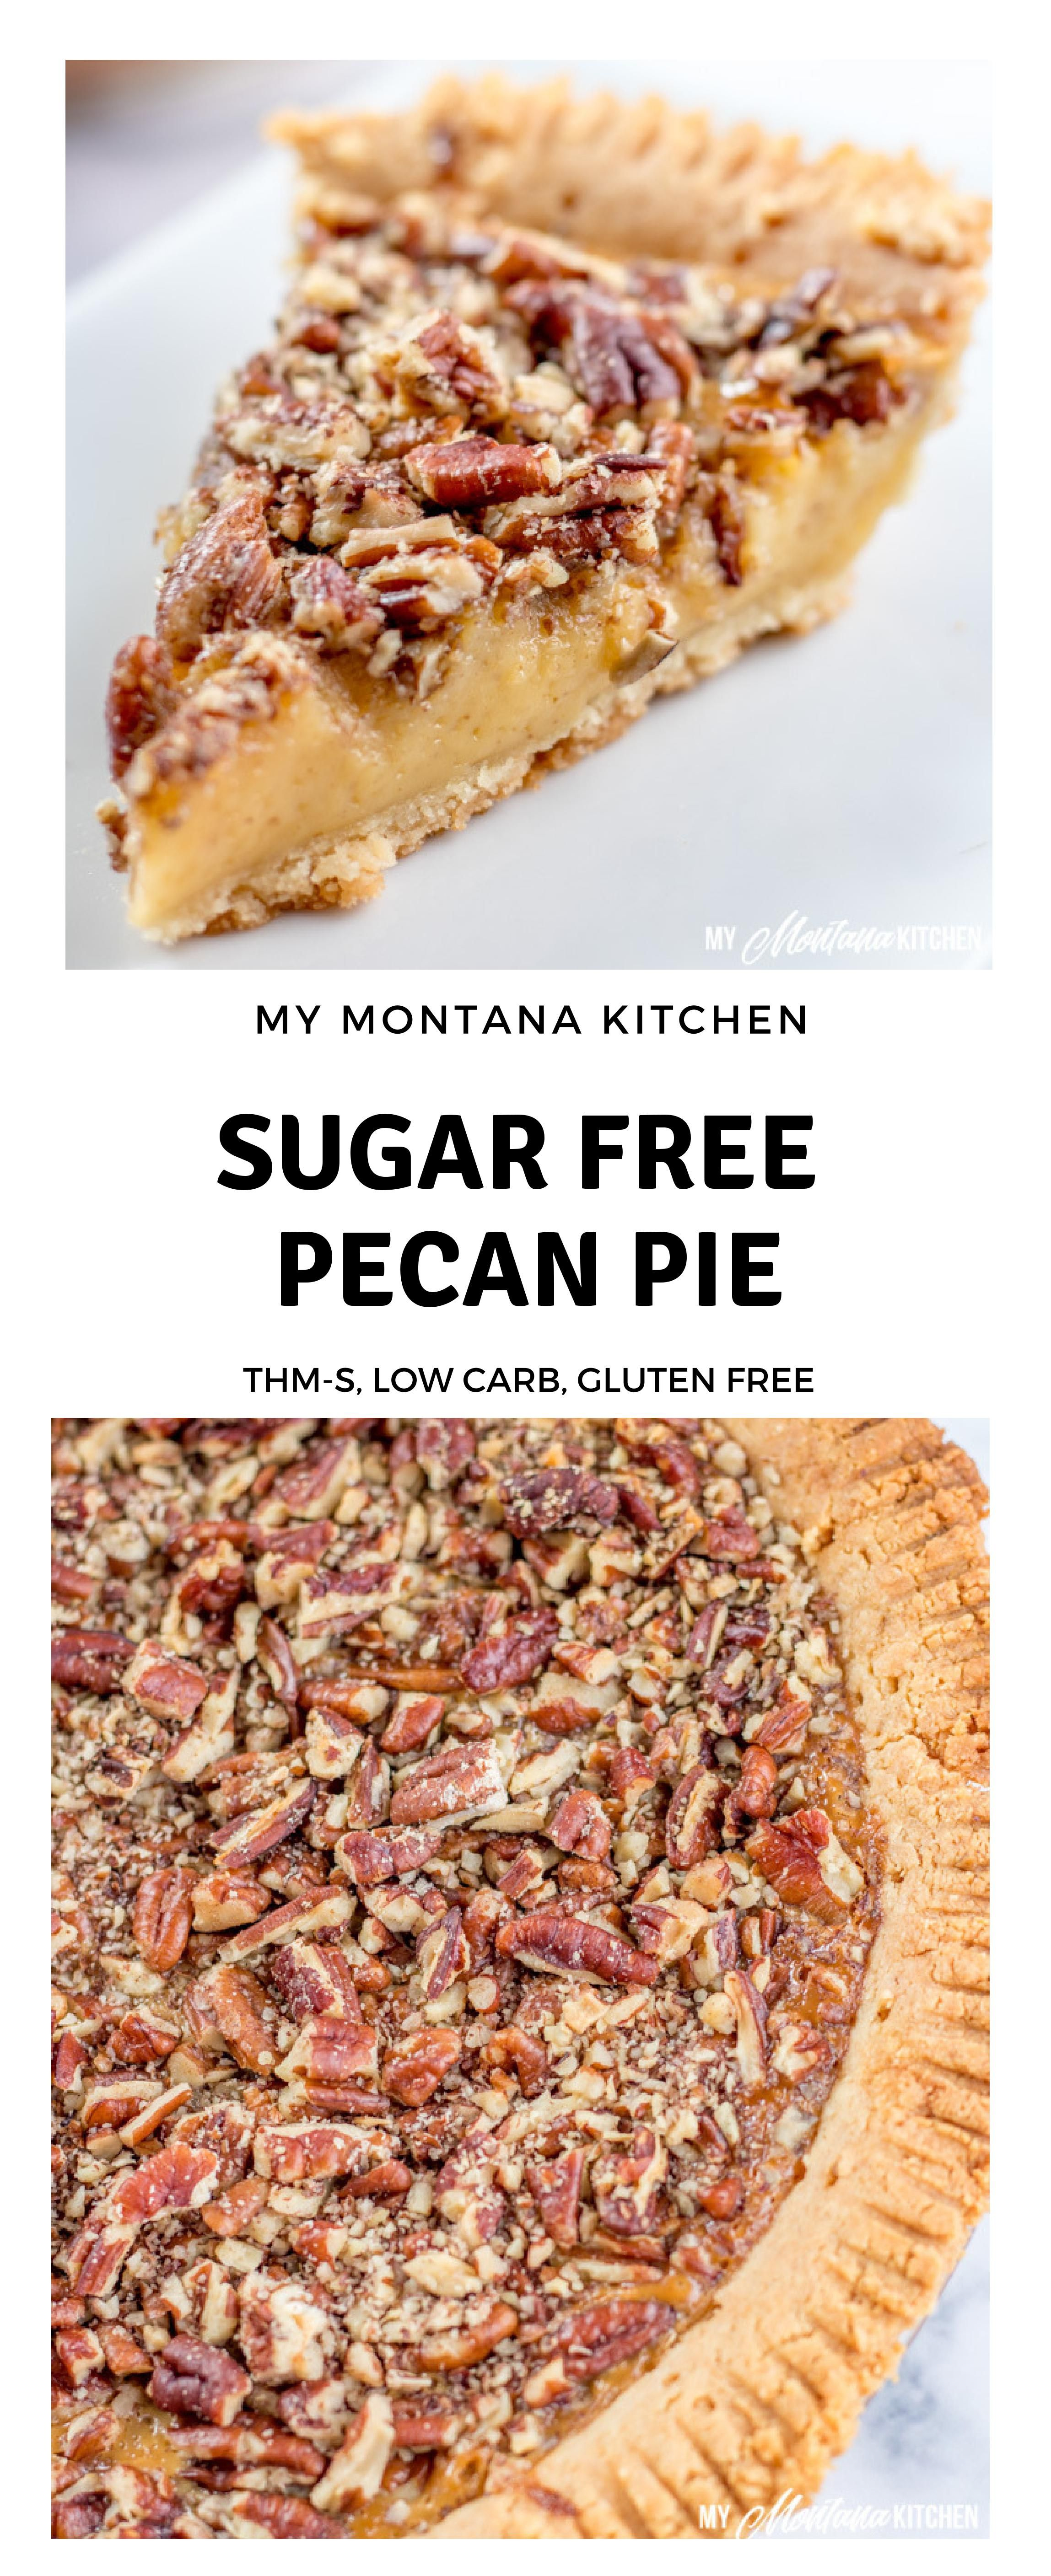 This Sugar Free Pecan Pie Uses A Low Carb Condensed Milk To Replace The Traditional Corn Syrup Used In Pecan Pie This L Sugar Free Pecan Pie Low Carb Pecan Pie